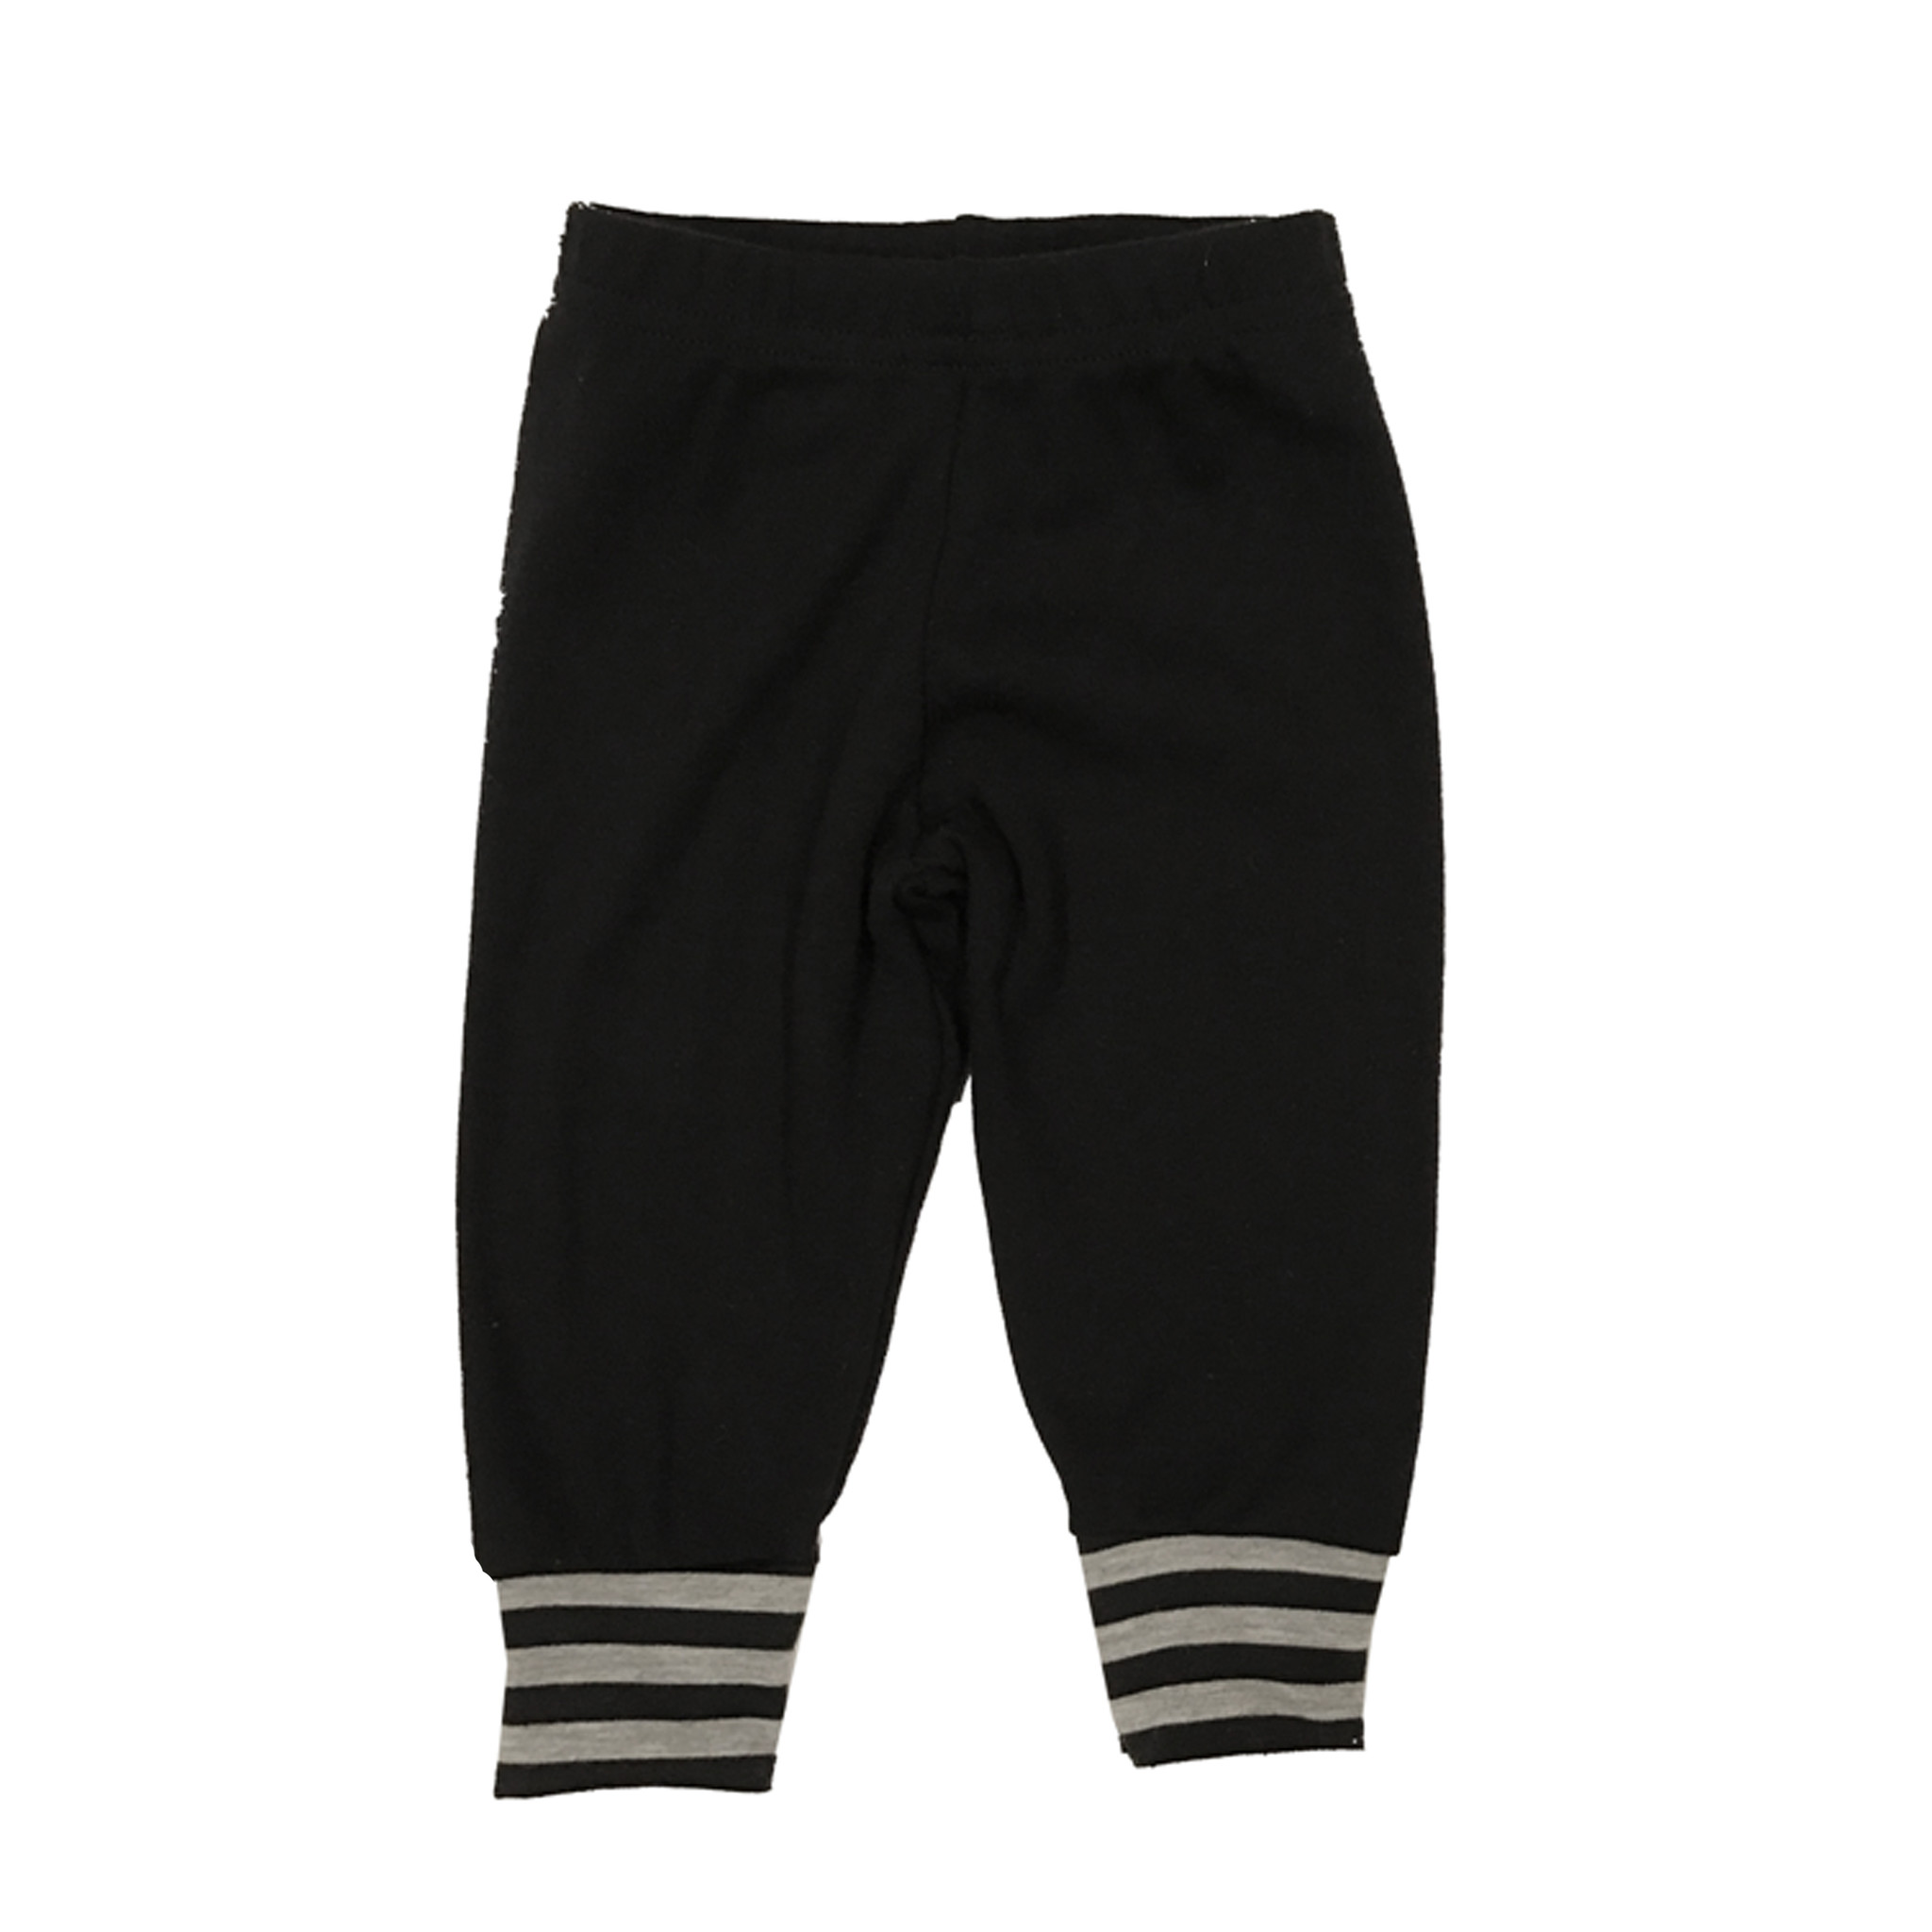 Small Change Black with Grey Stripe Cuff Pant